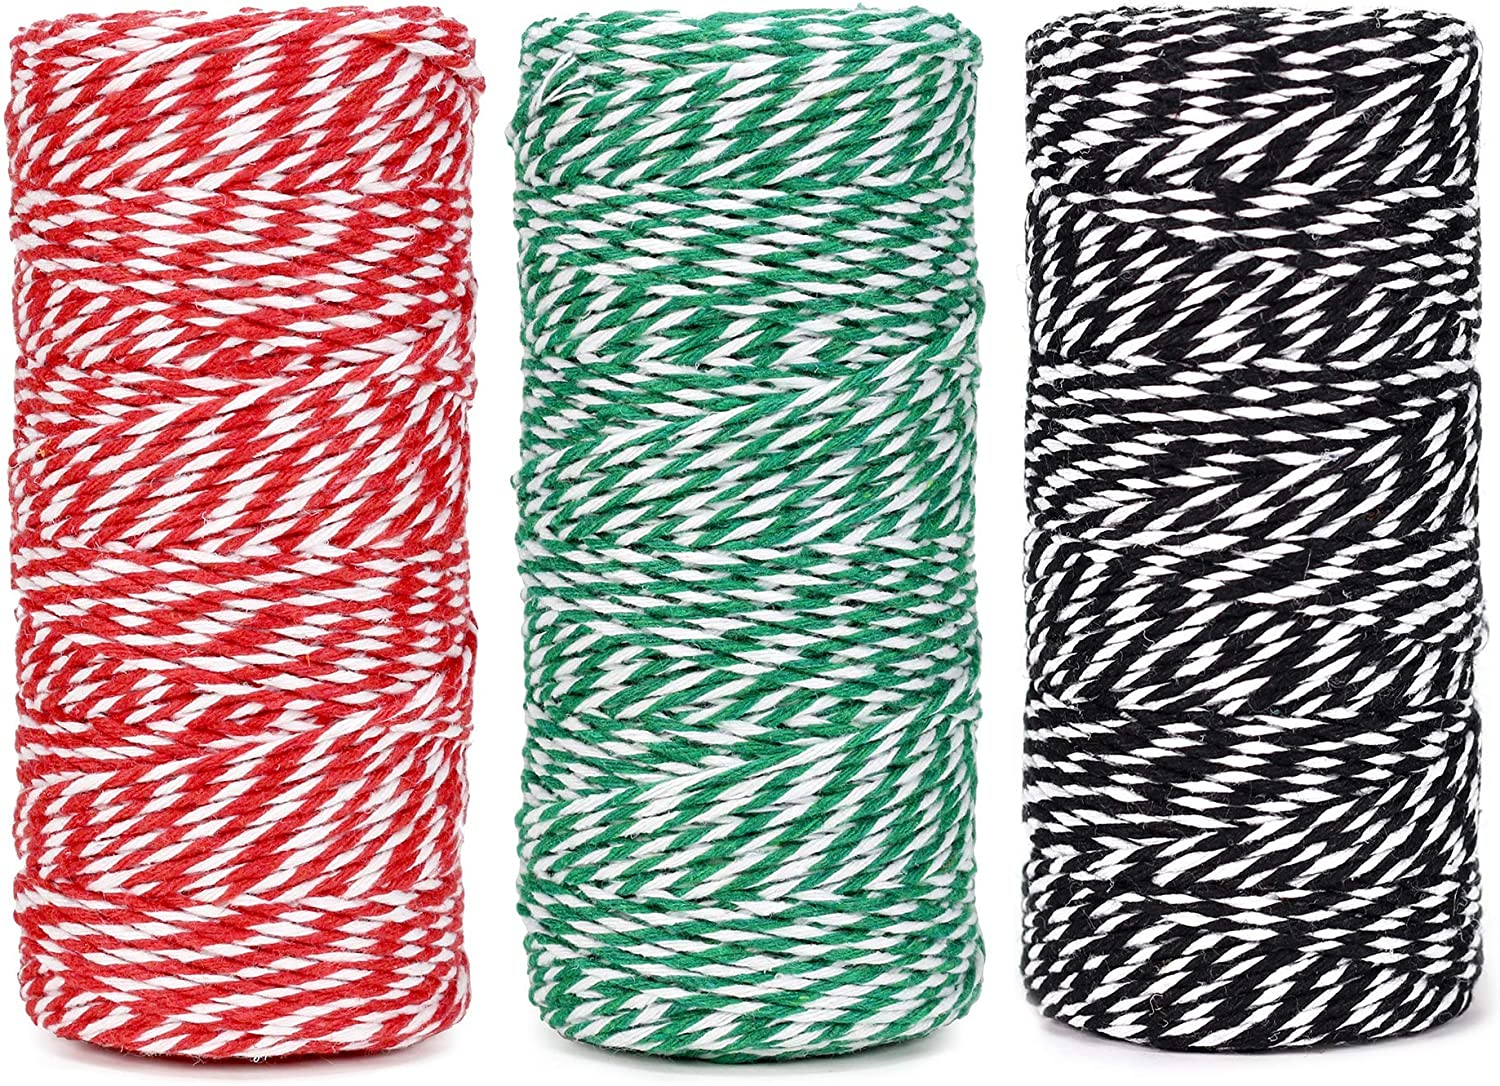 Cotton Very popular! Bakers Twine Popular standard String 328 Feet Crafts for 100m and Baking